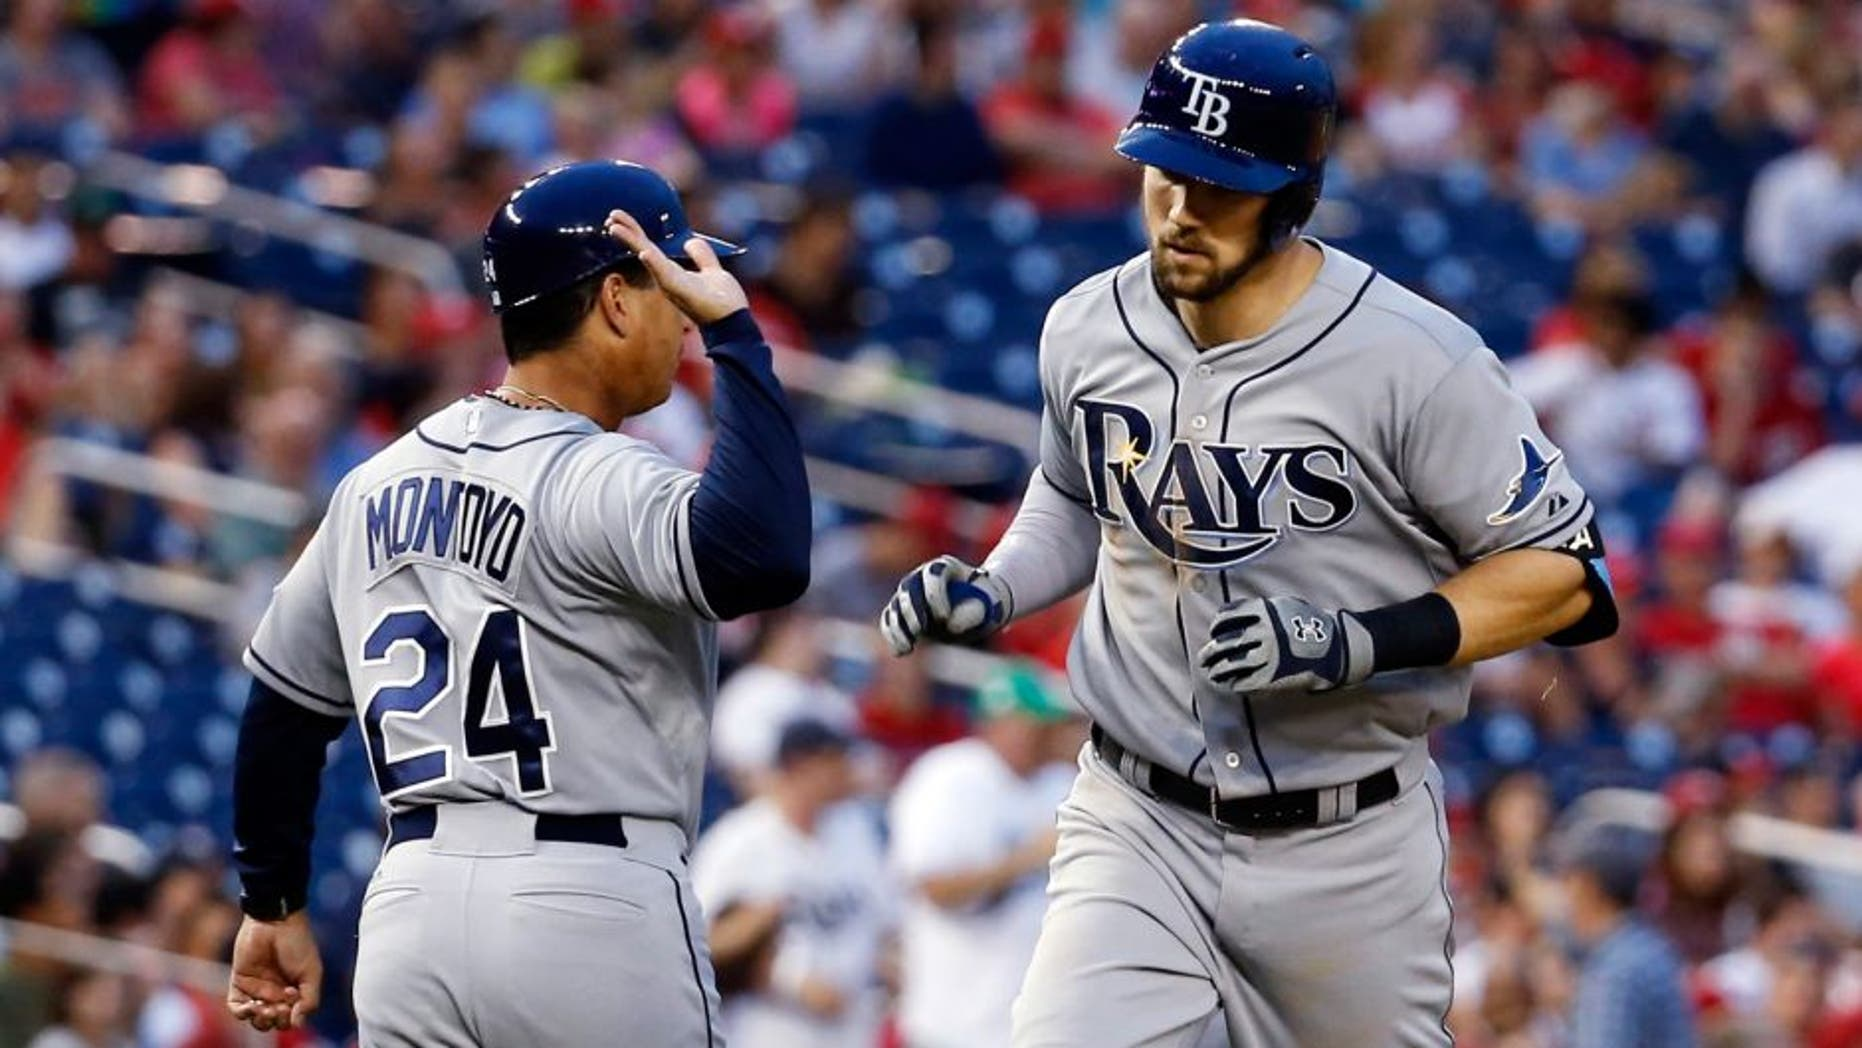 Tampa Bay Rays third base coach Charlie Montoyo (24) congratulates Steven Souza Jr. (20) as he rounds the bases on a solo home run during the fifth inning of a baseball game against the Washington Nationals at Nationals Park, Wednesday, June 17, 2015, in Washington. (AP Photo/Alex Brandon)